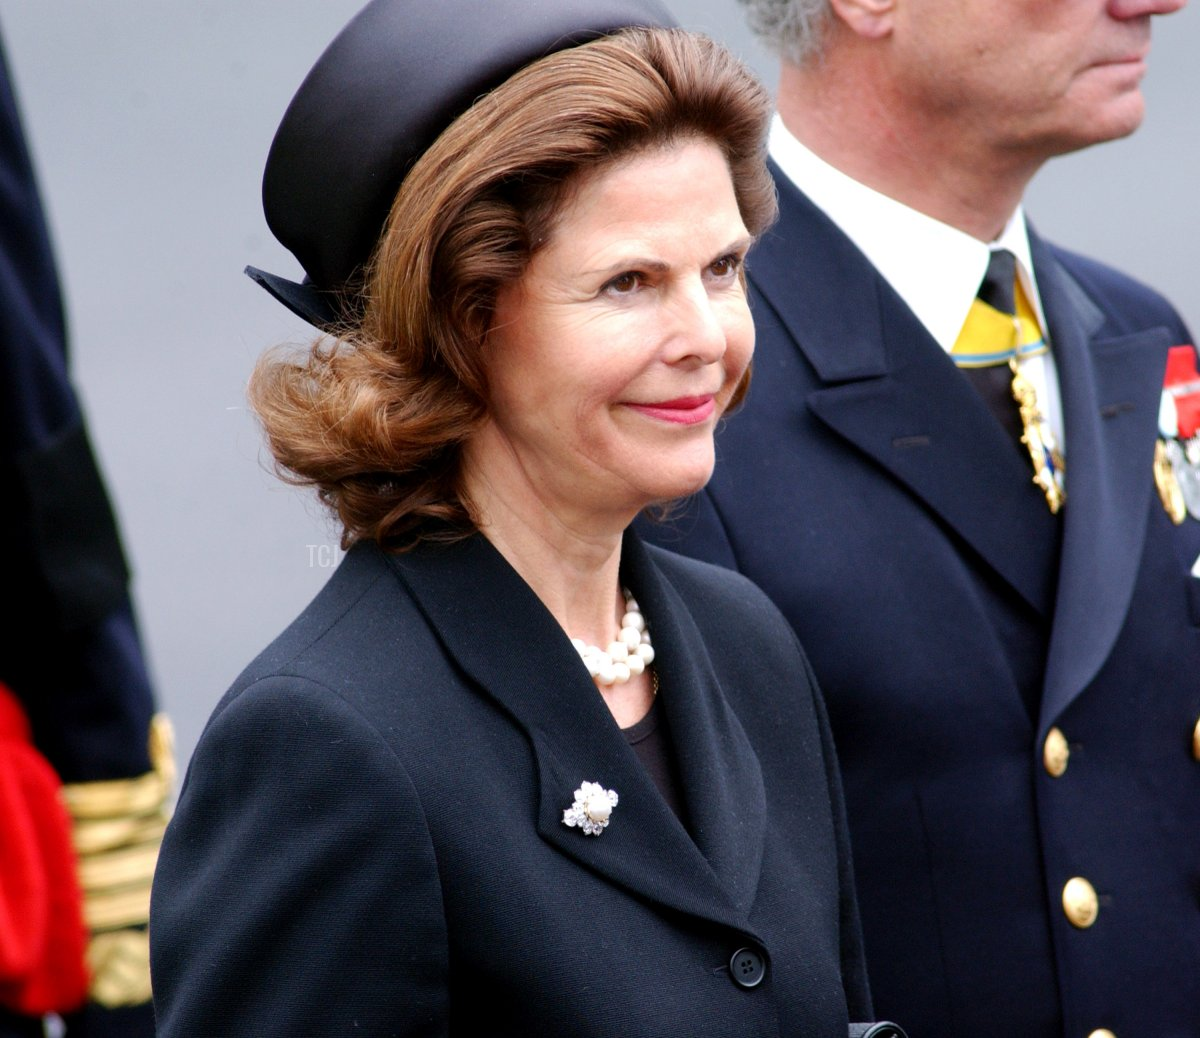 Queen Silvia of Sweden leaves Westminster Abbey following the state funeral of the Queen Mother April 9, 2002 in London